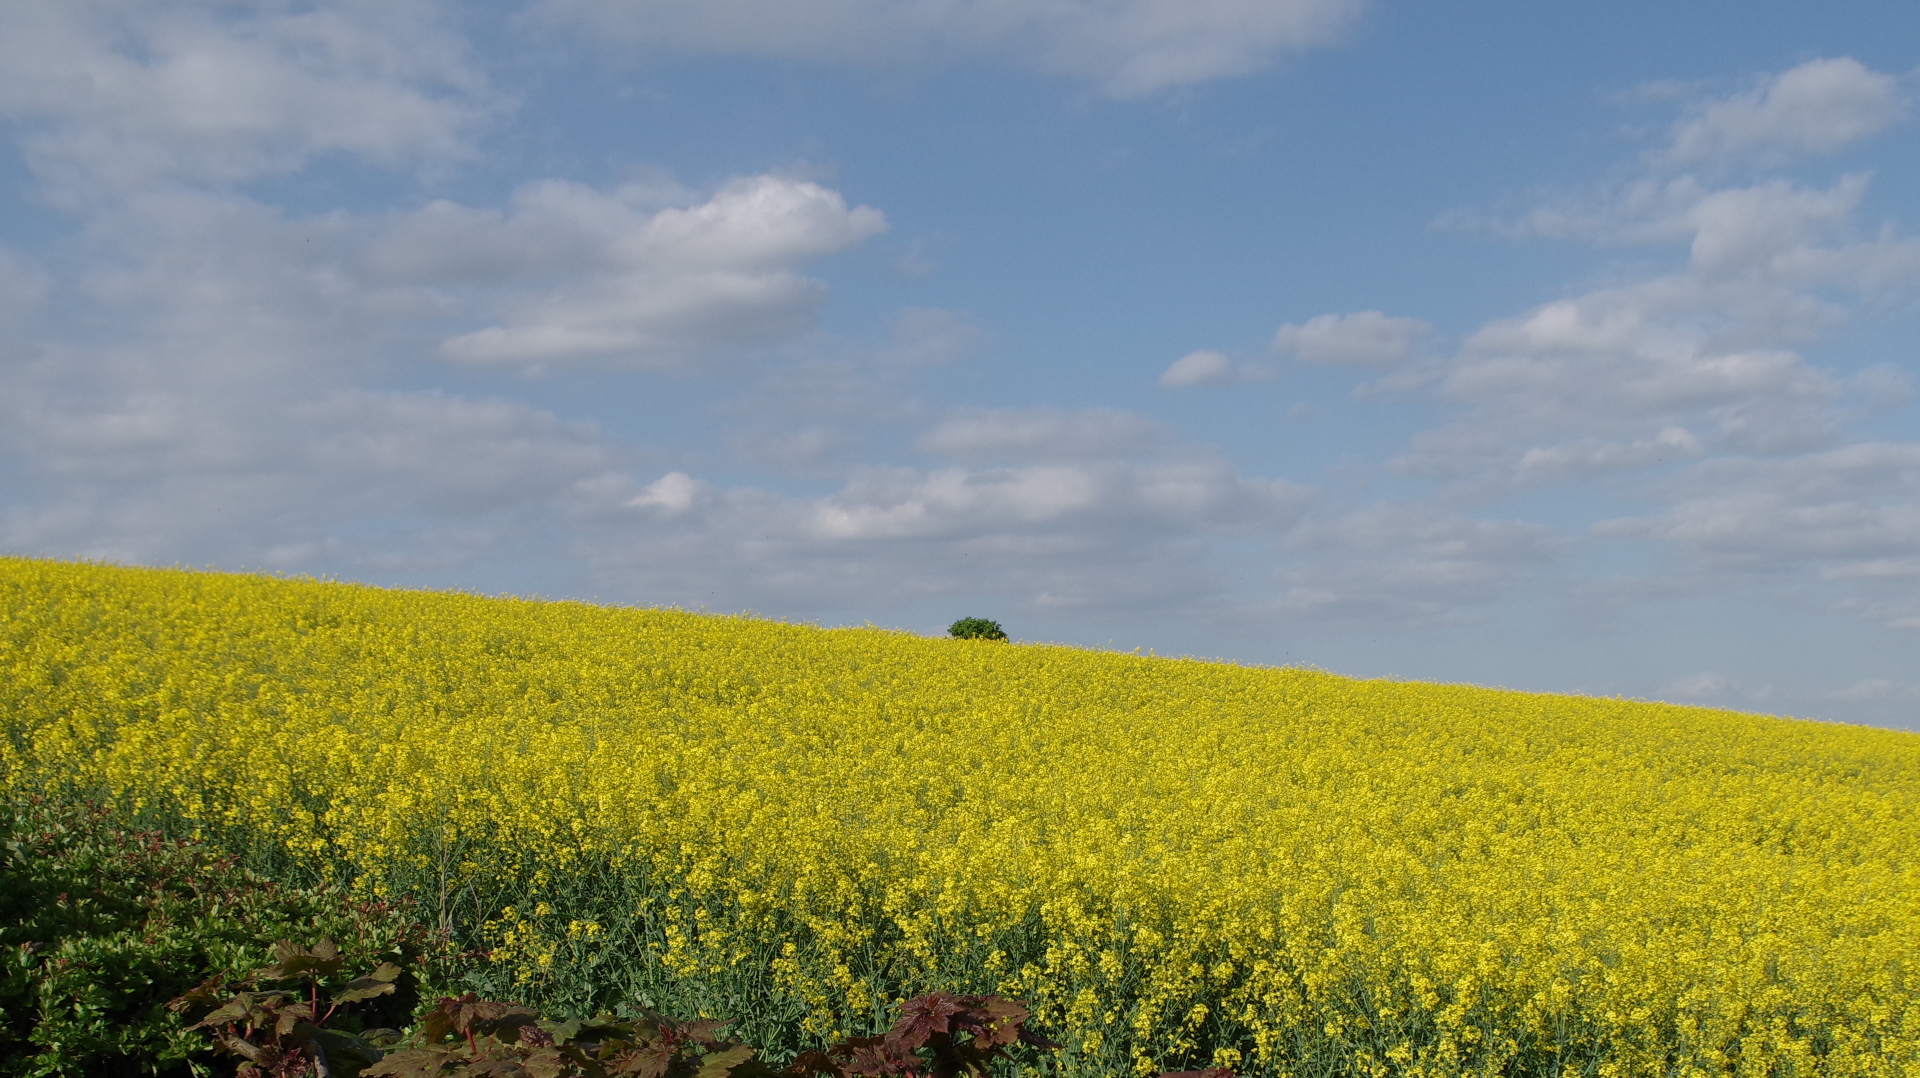 Field of Oil-seed Rape